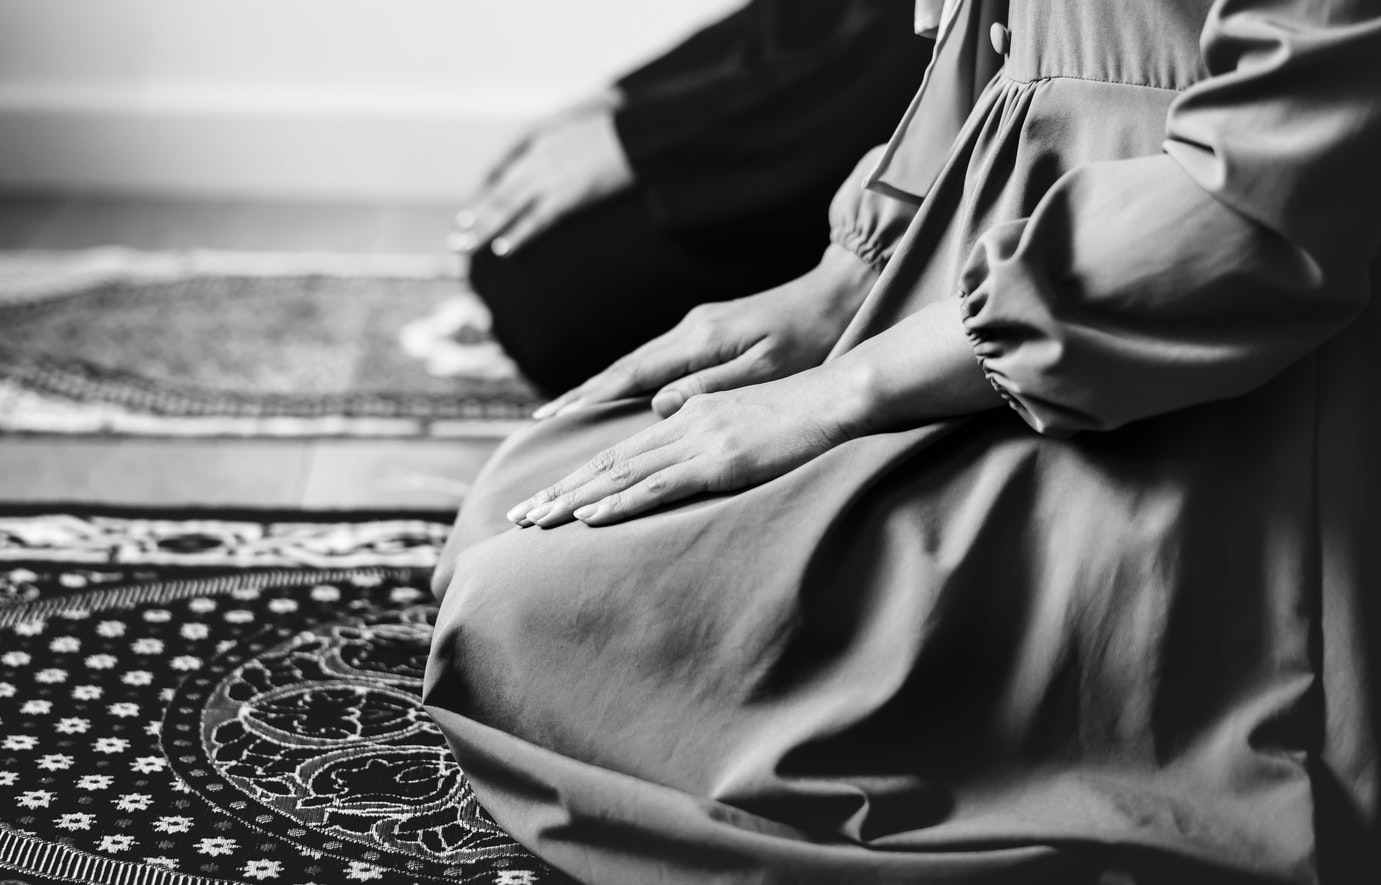 Islam Does Not Justify Sexual Exploitation – We Must Challenge These Harmful Misconceptions